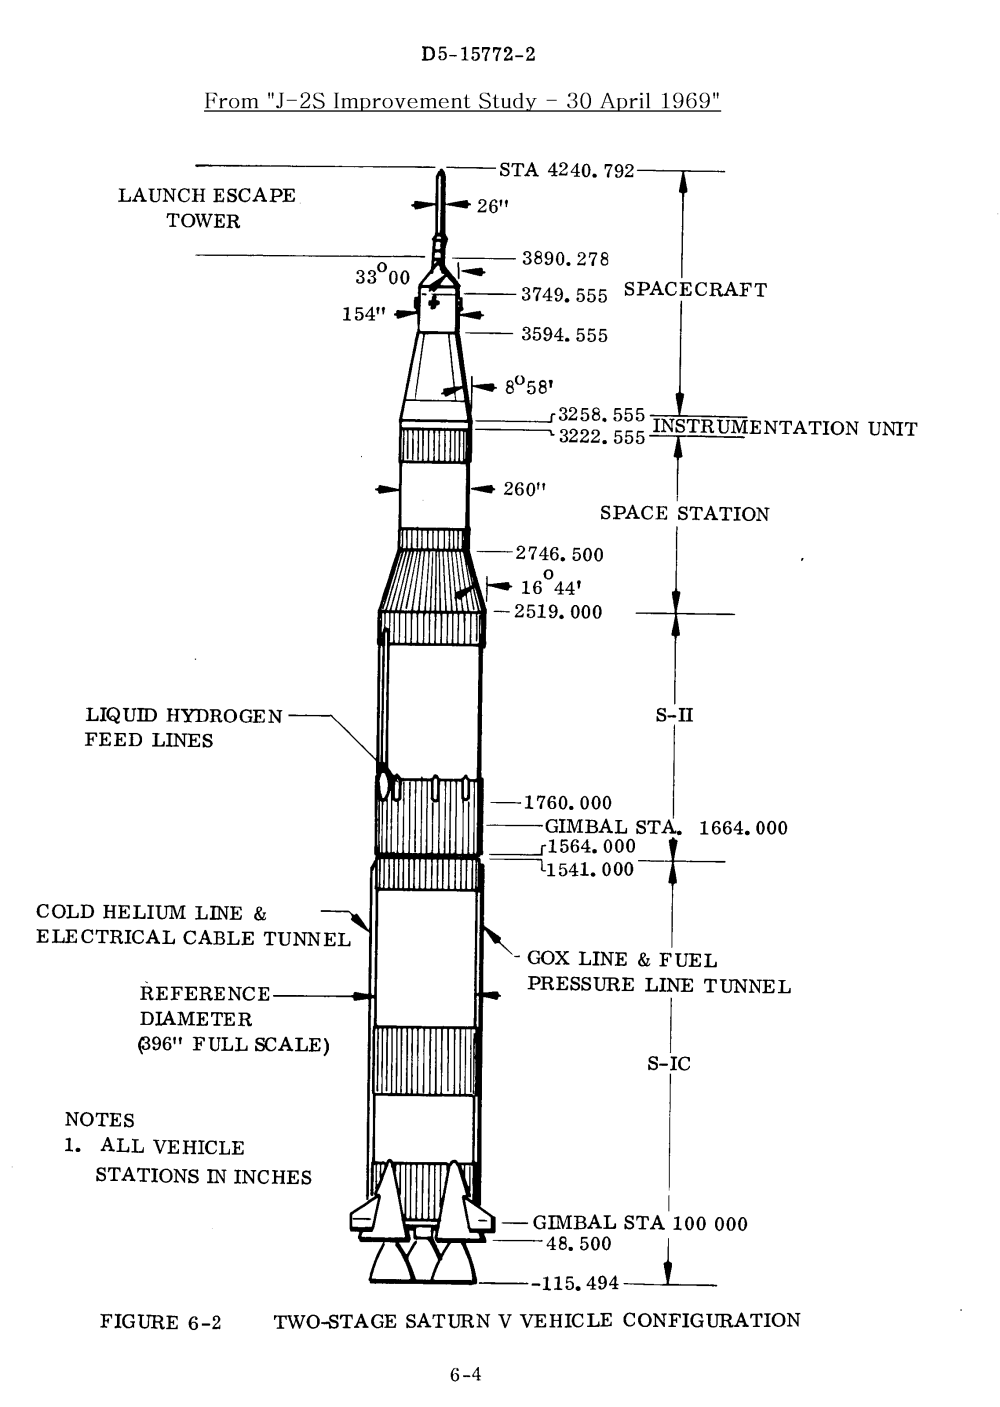 medium resolution of saturn v arrangement diagram 1964 saturn v arrangement diagram 1969 saturn v with 260 payload shell arrangement diagram 1969